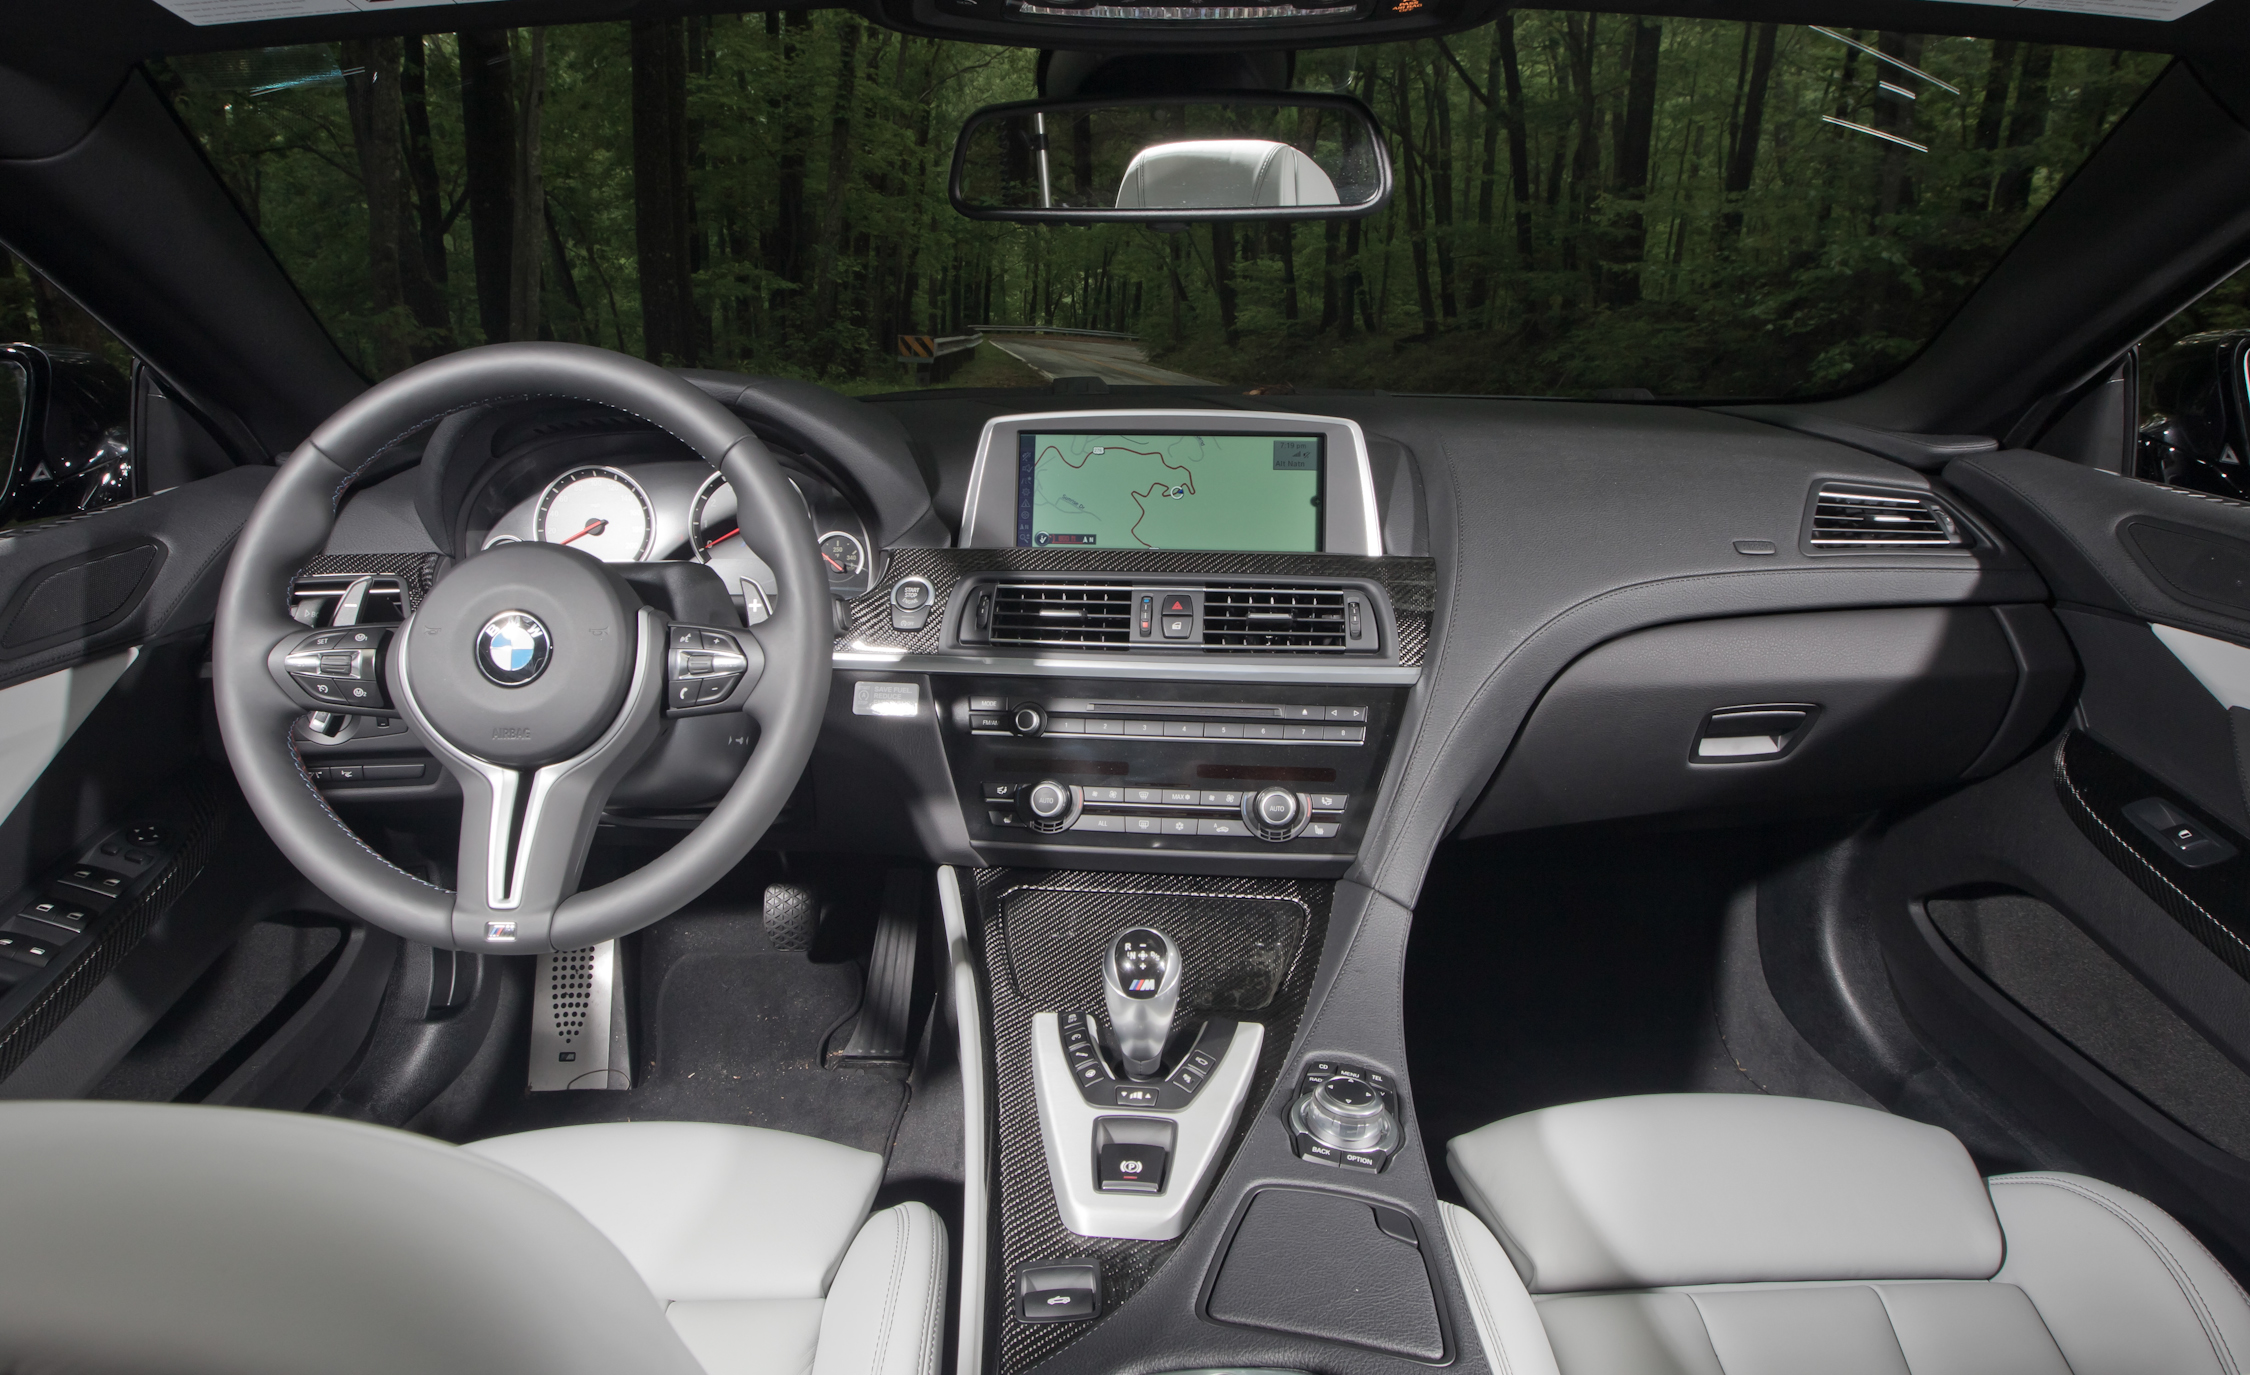 2012 BMW M6 Convertible Interior Dashboard (Photo 9 of 30)